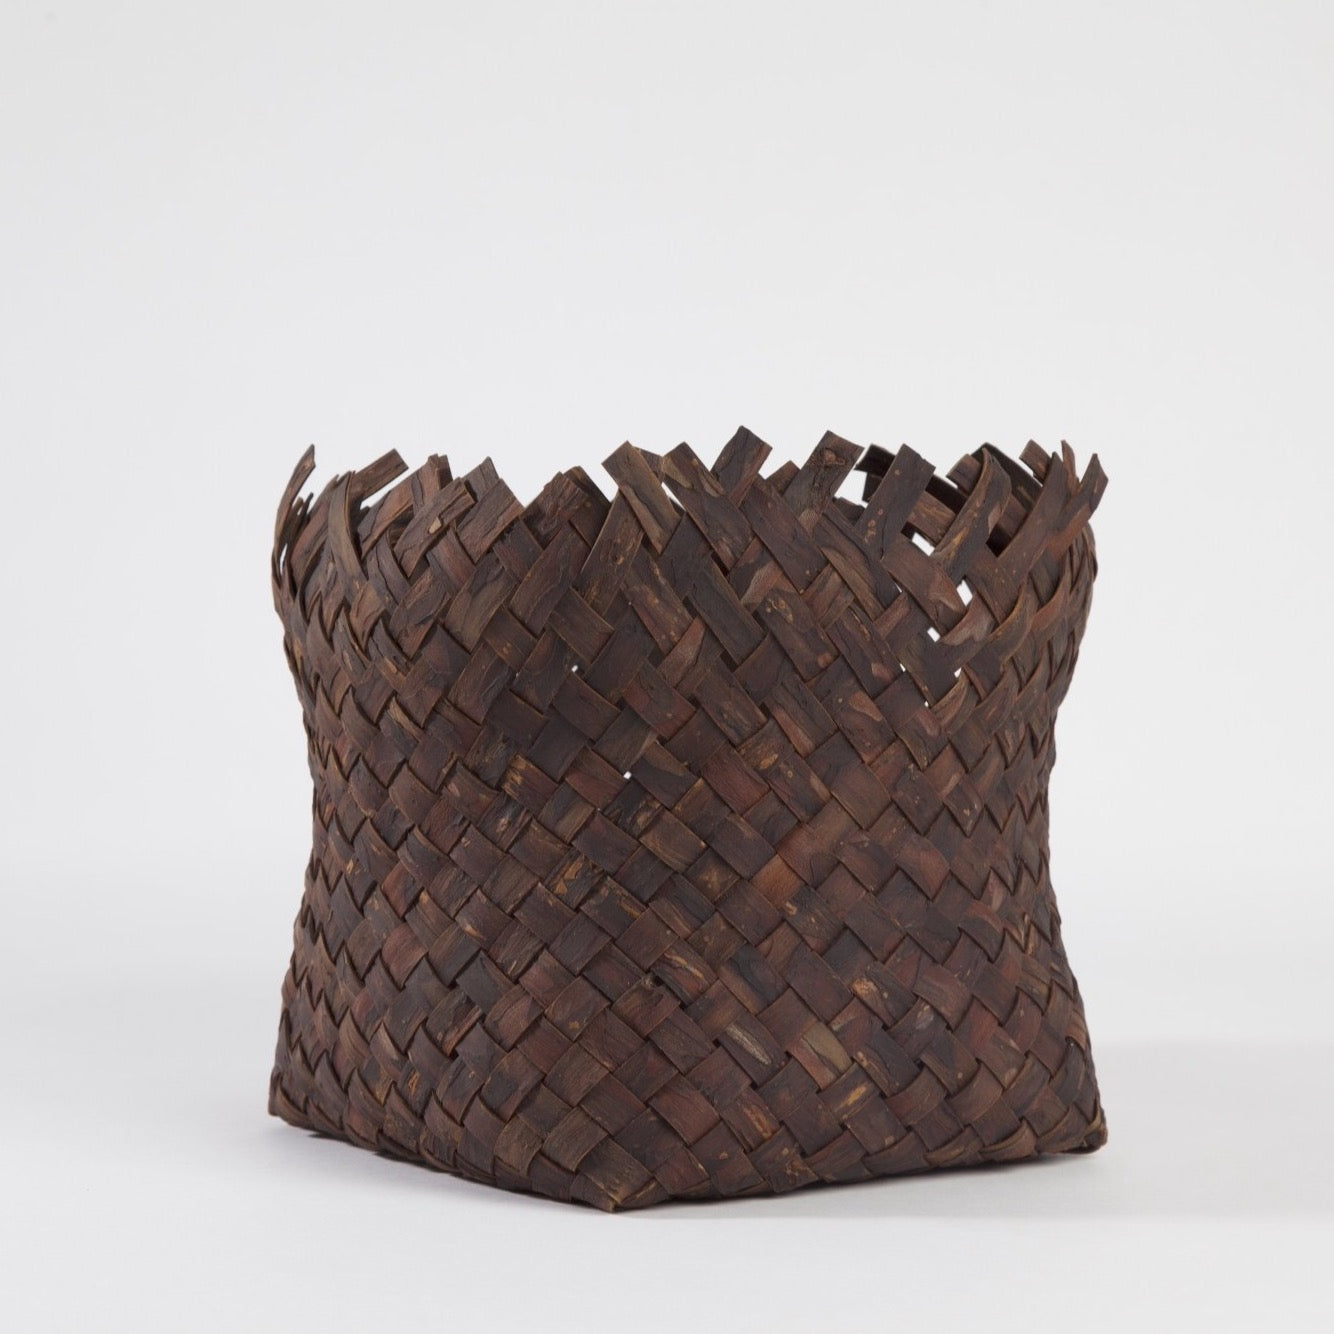 Pine Bark Basket - THE HOME OF SUSTAINABLE THINGS